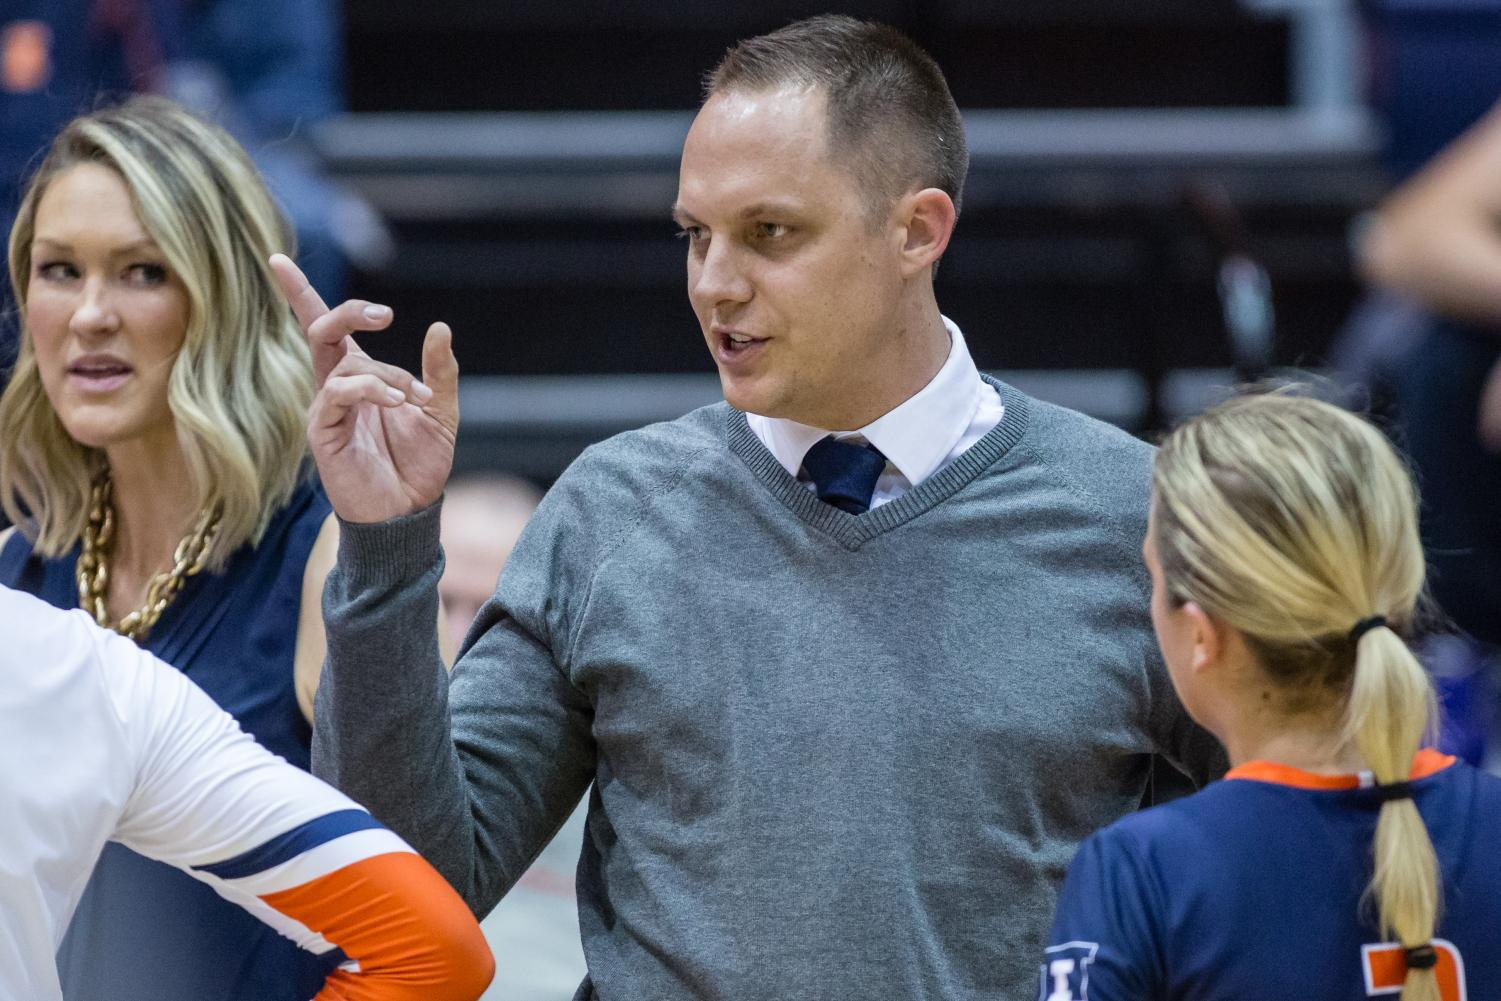 Illinois head coach Chris Tamas talks to his team during a timeout in the match against Michigan at Huff Hall on Nov. 5. The Illini won 3-2.